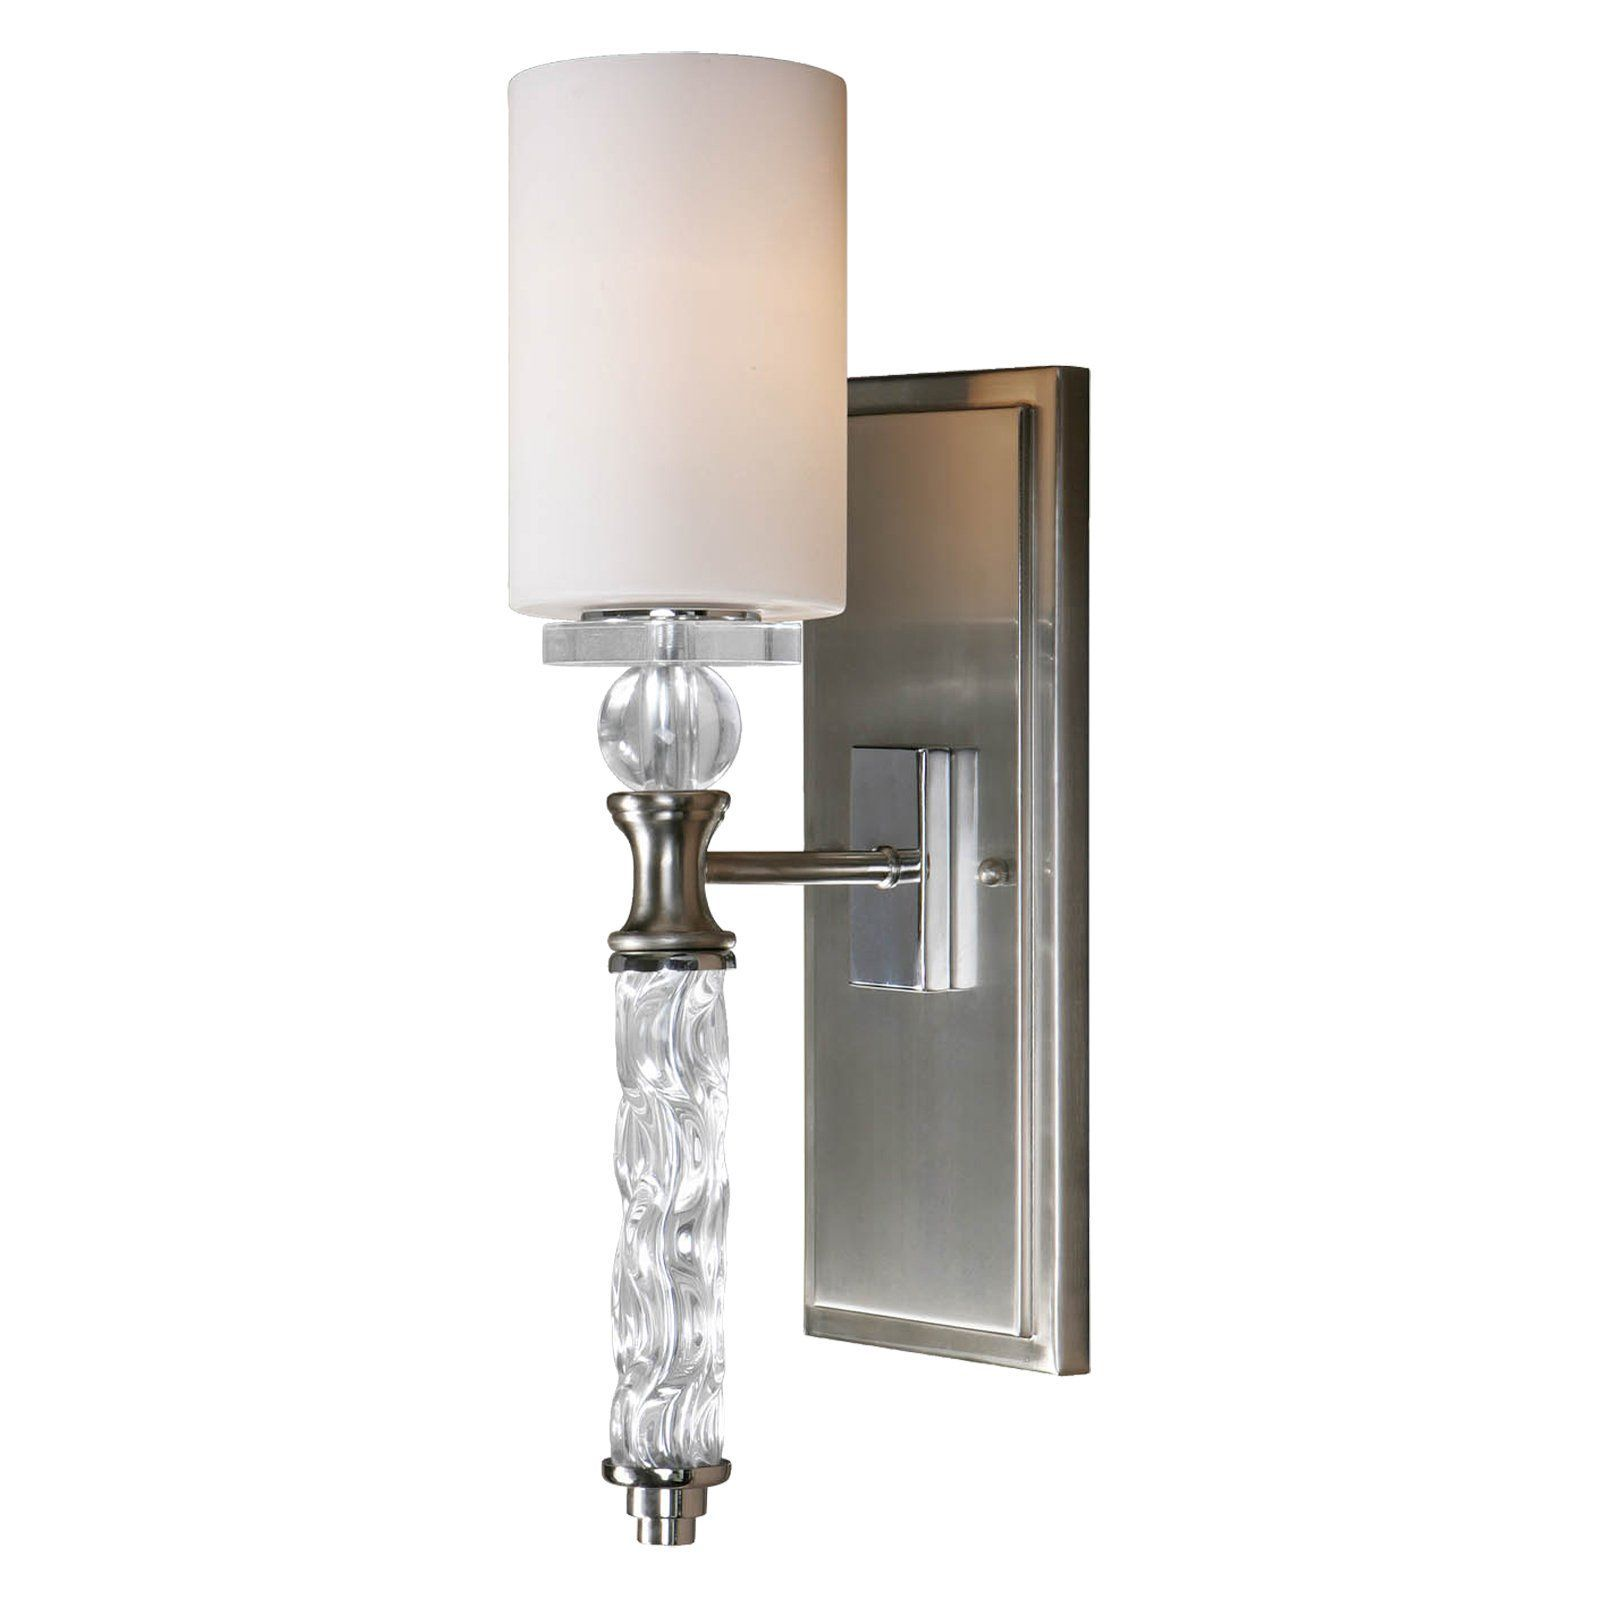 Uttermost 22486 Campania Wall Sconce - 5.25W in. Brushed Nickel Plated   from hayneedle.com